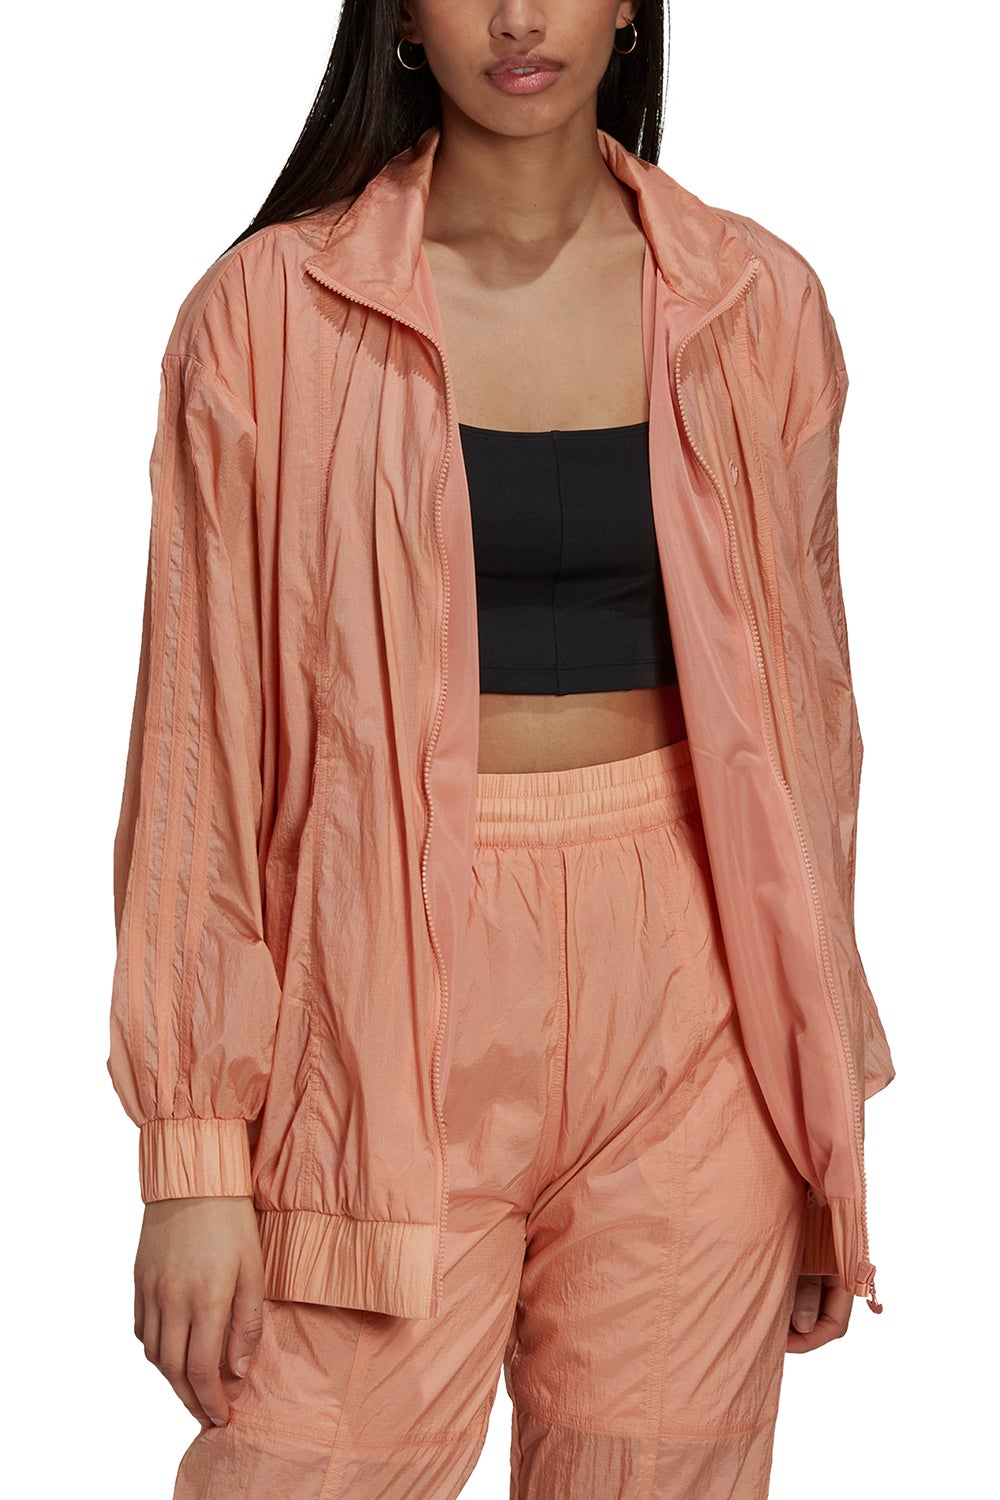 adidas Track Top Ambient Pink